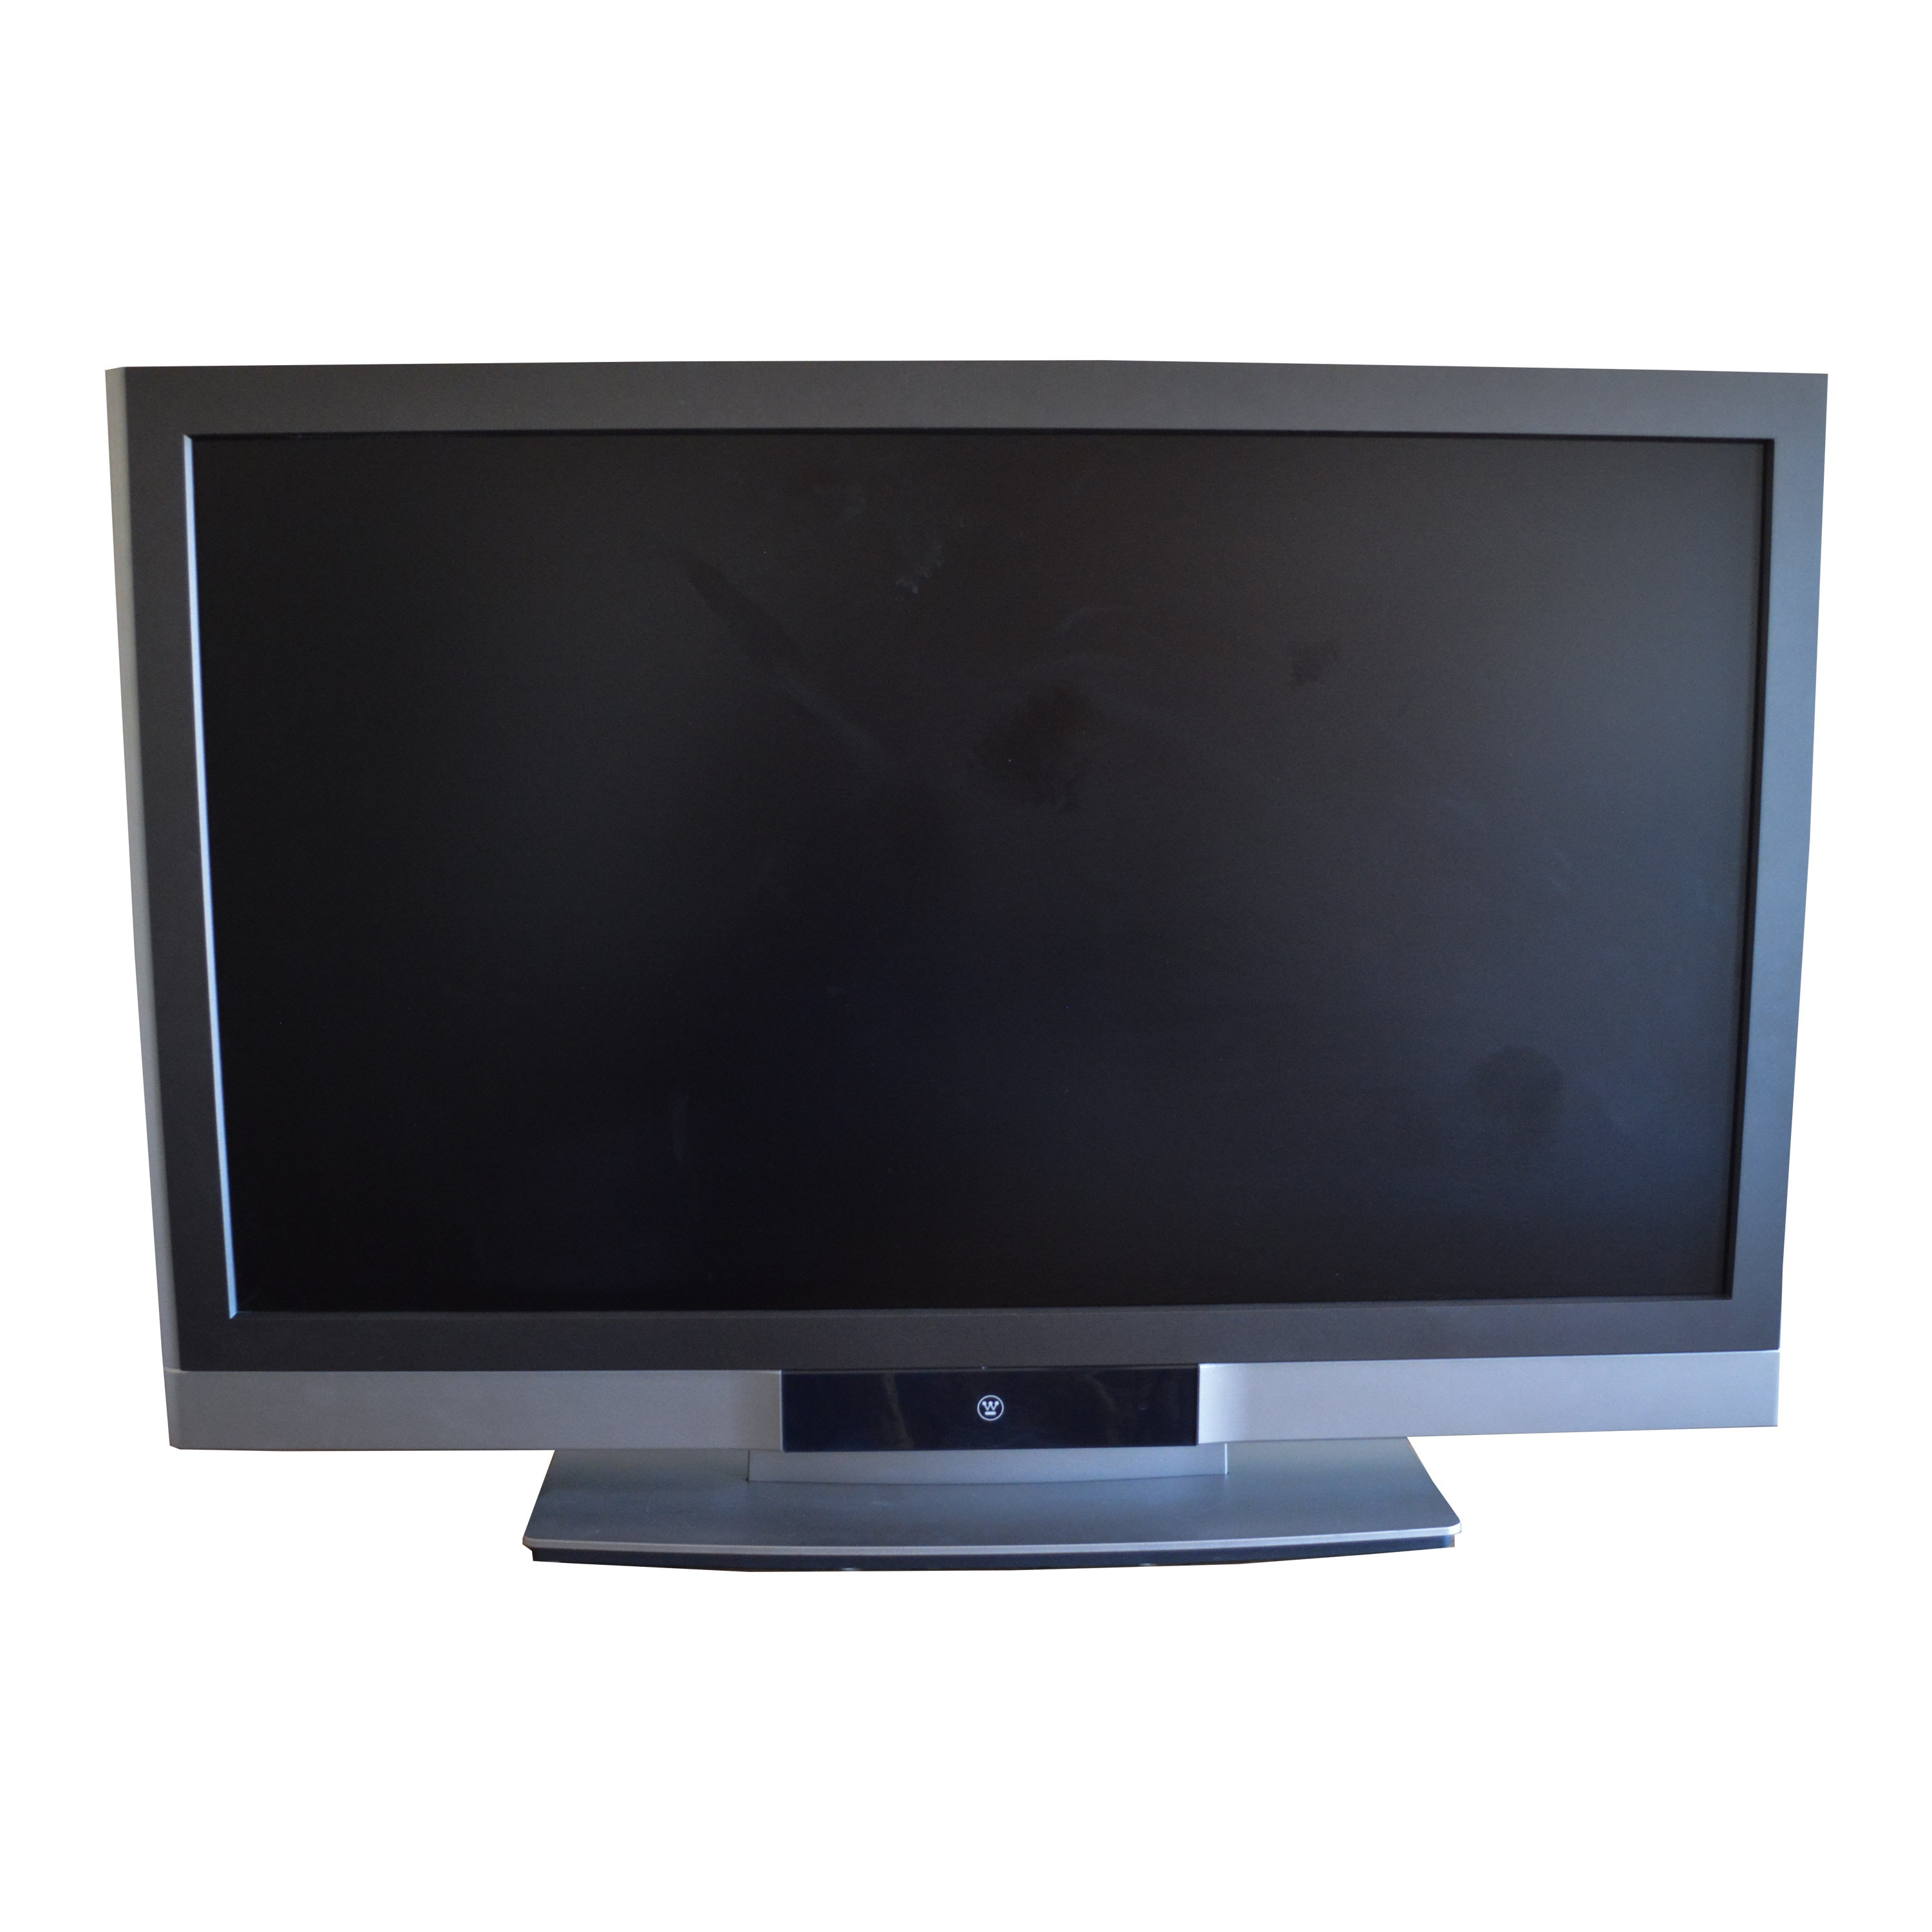 "Westinghouse 47"" LCD Flat Screen Television"